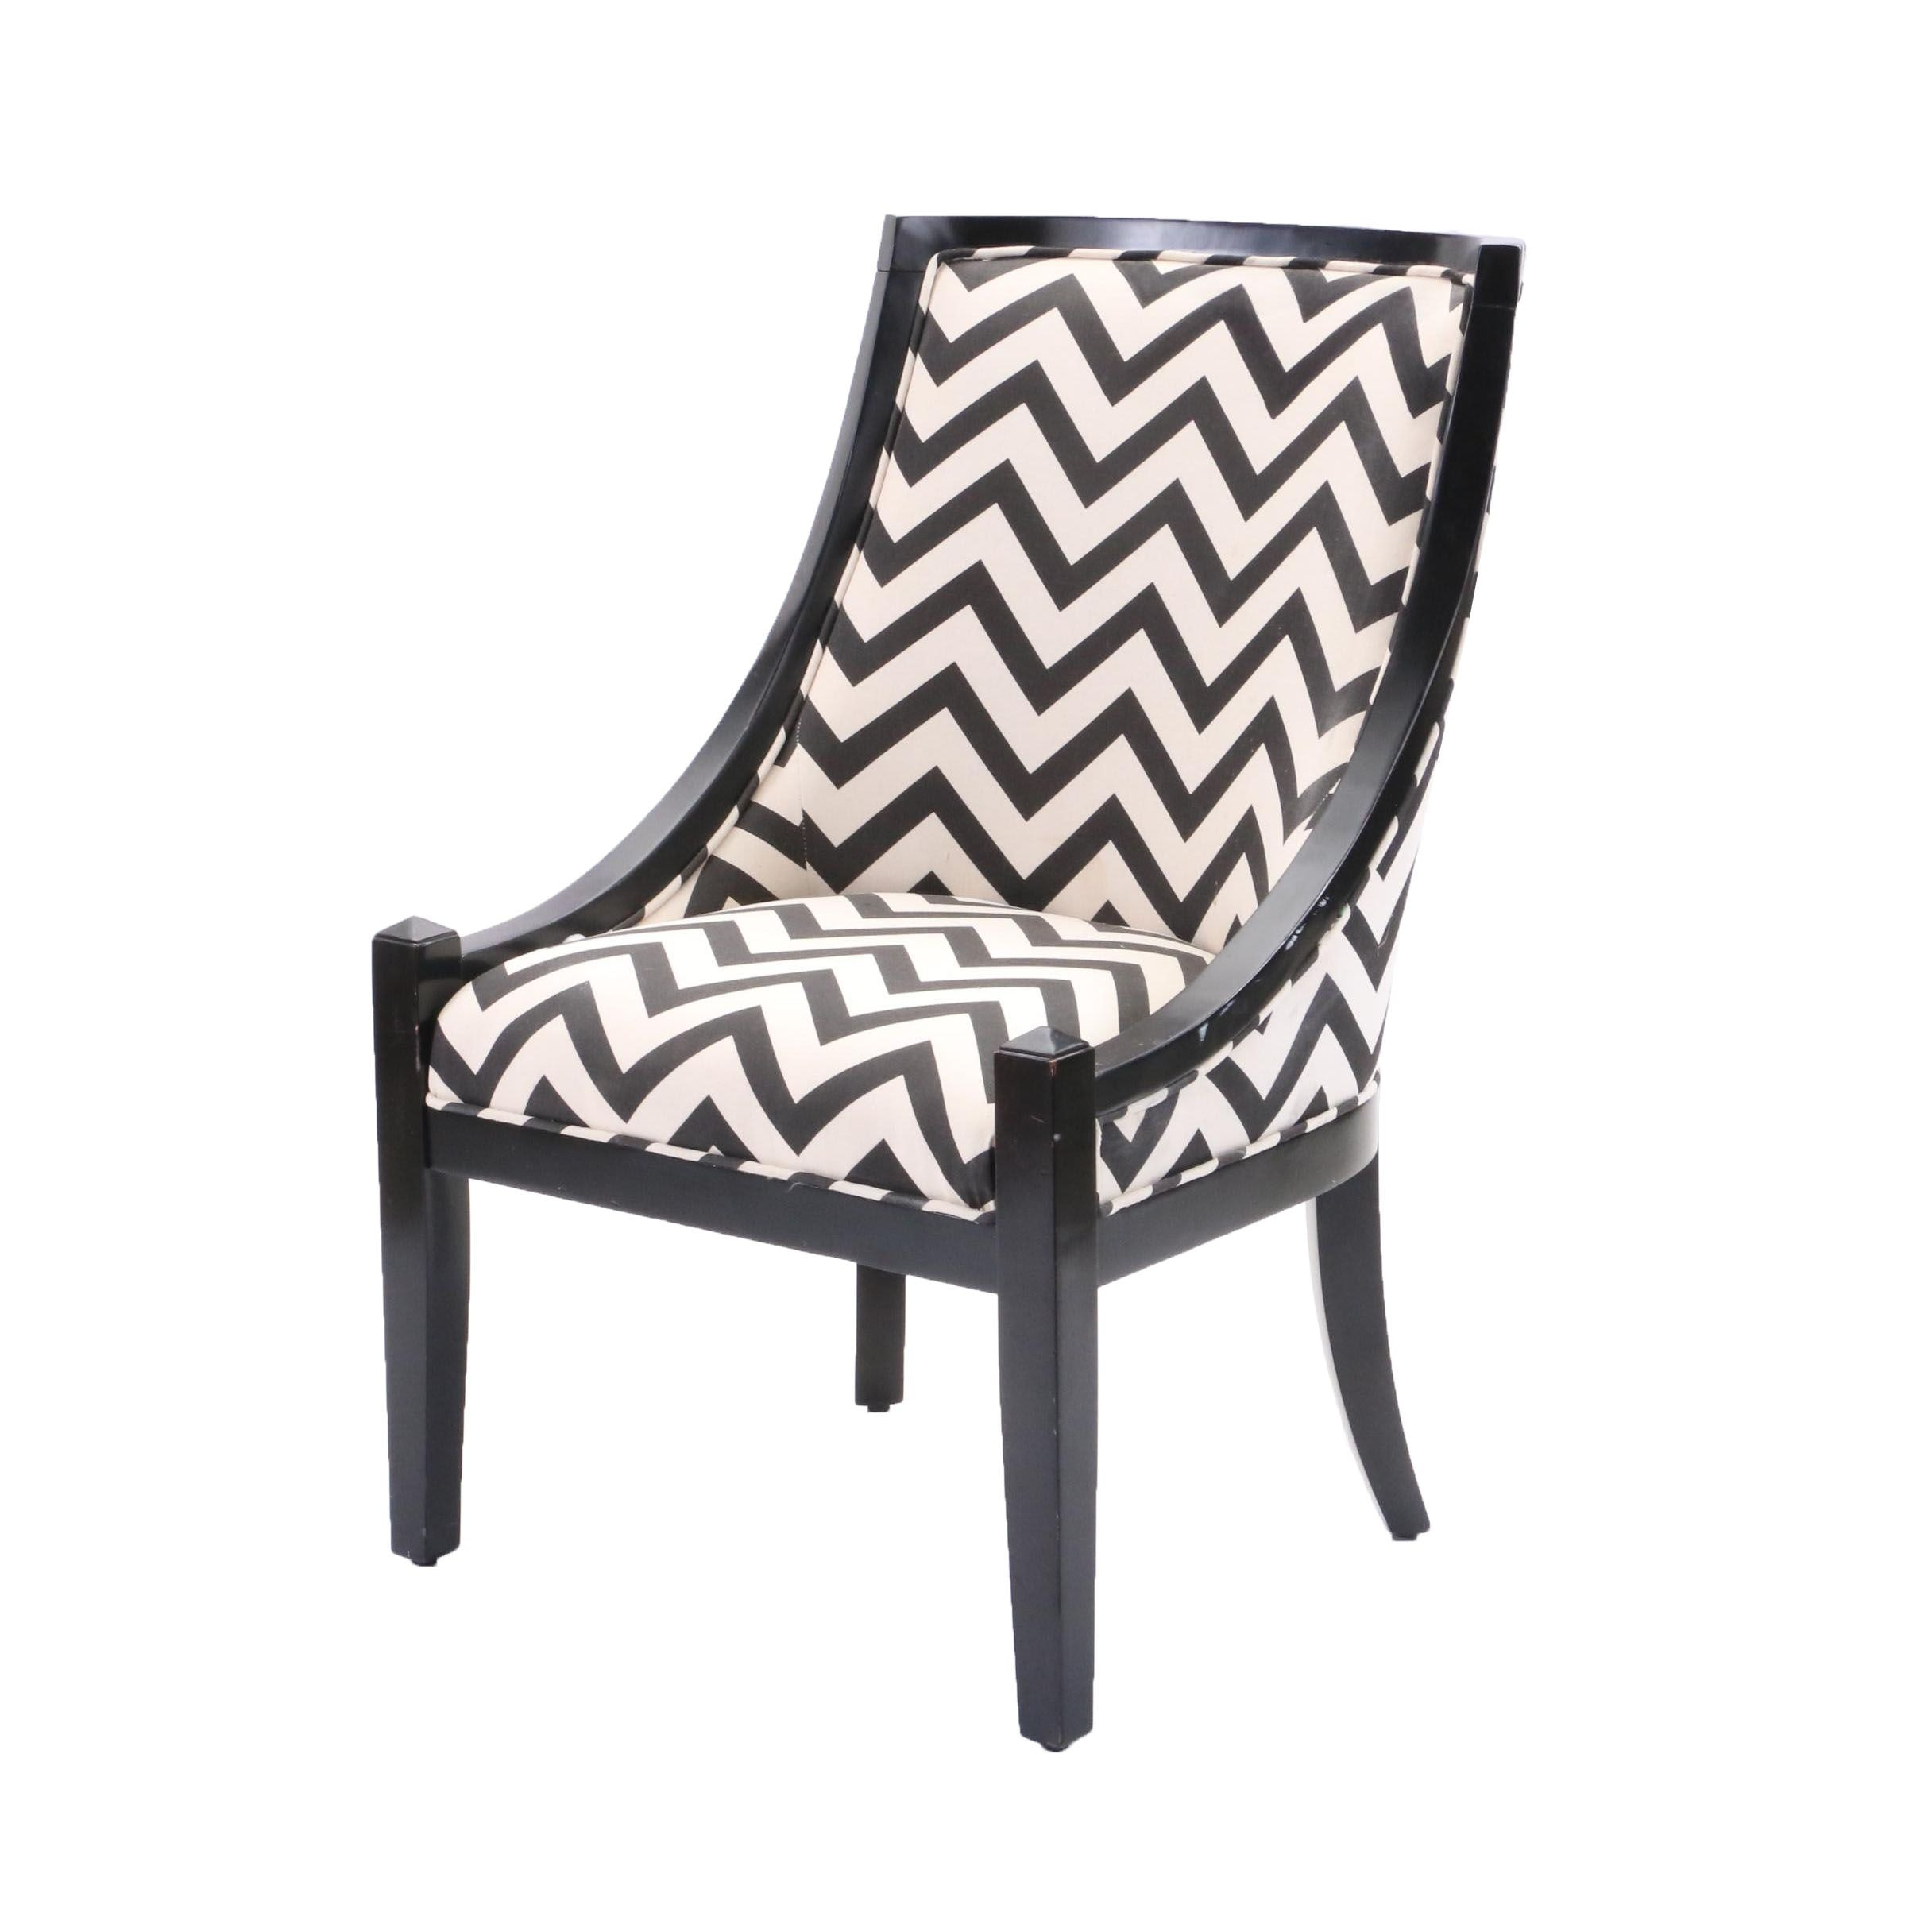 Empire Style Black and White Upholstered Chair, Late 20th or 21st Century